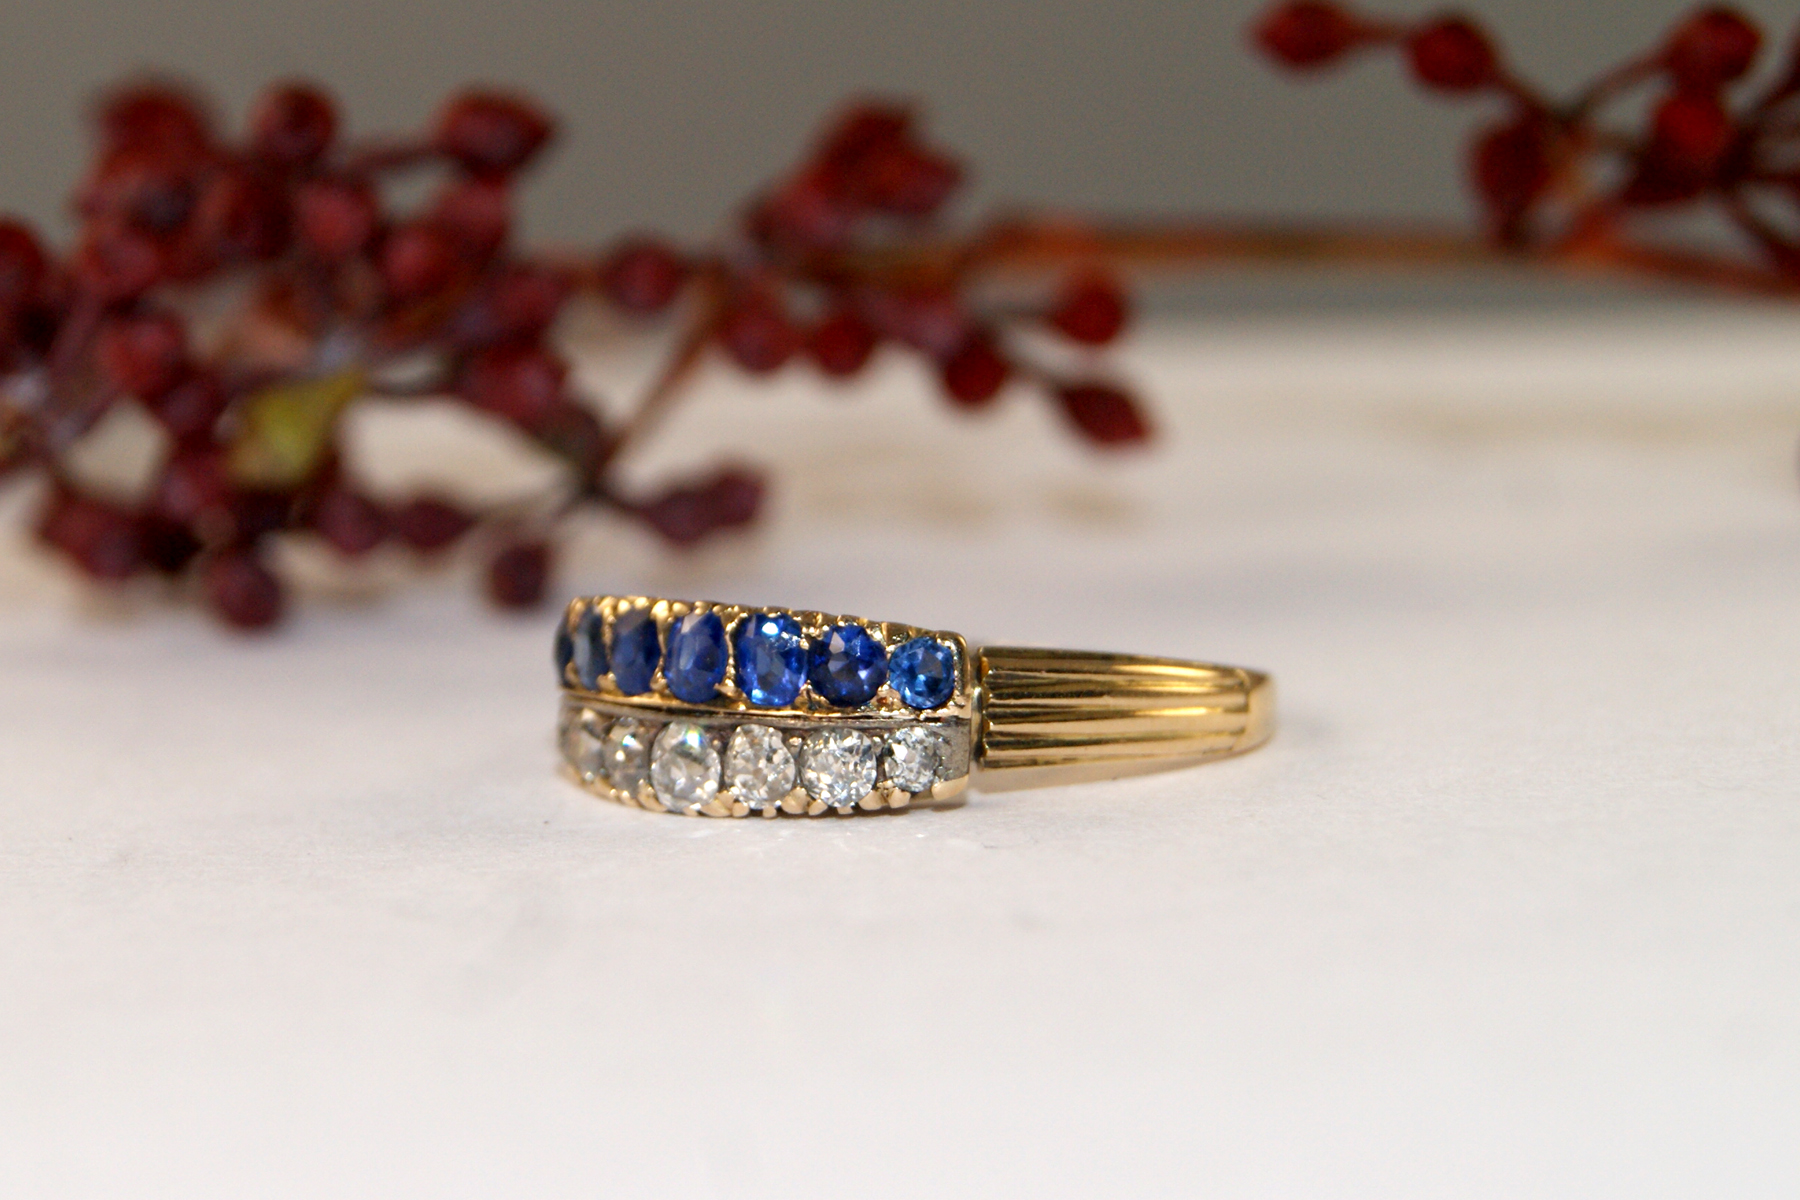 products maniamania ring sapphire whitegold rings blue bluesapphire front midnight gold engagement dark white devotionsolitairering darker solitaire devotion